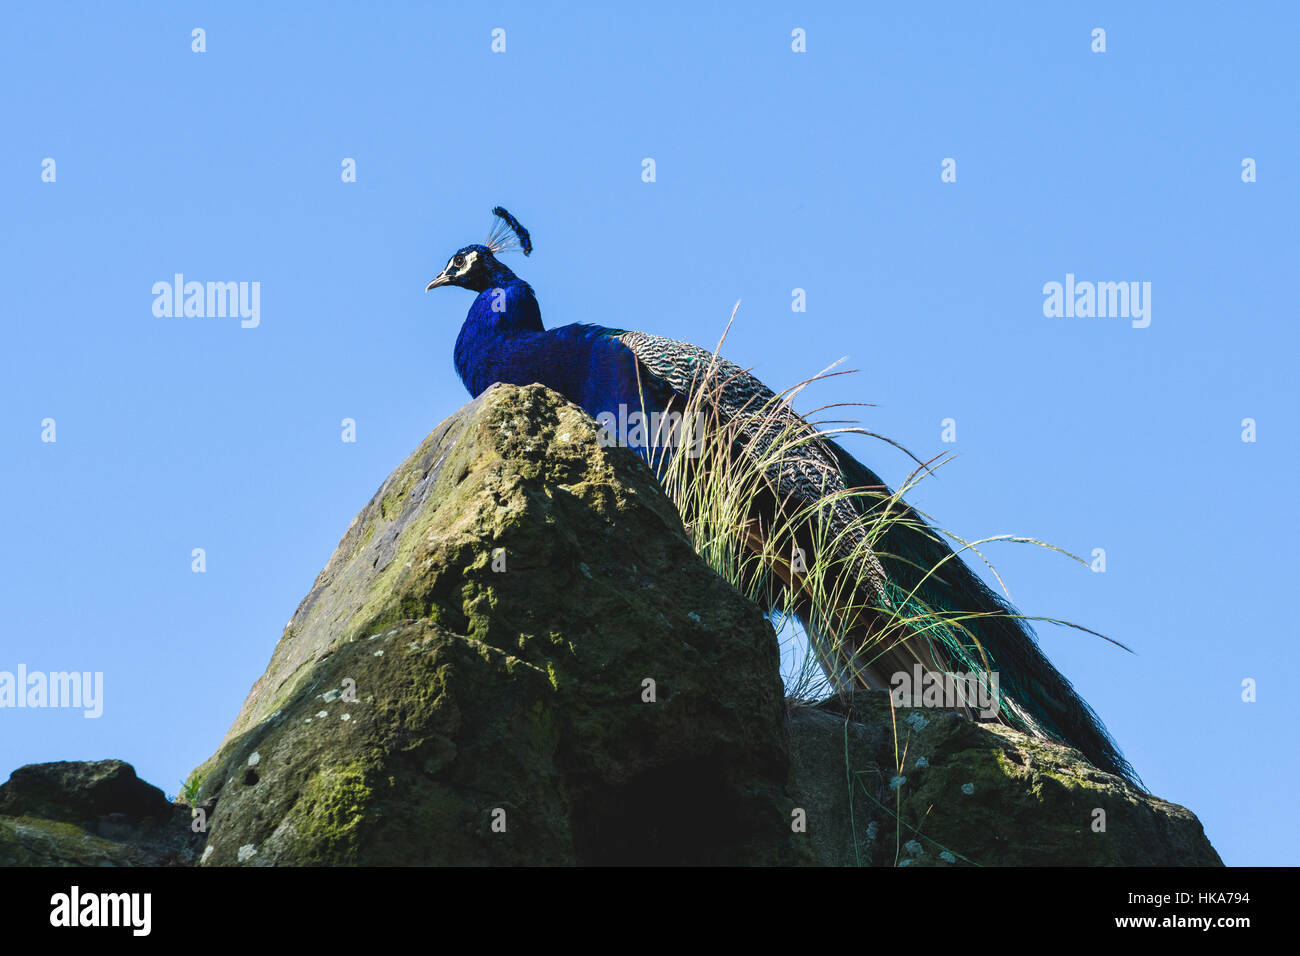 A Indian Peacock (Pavo cristatus) is standing on a rock - Stock Image